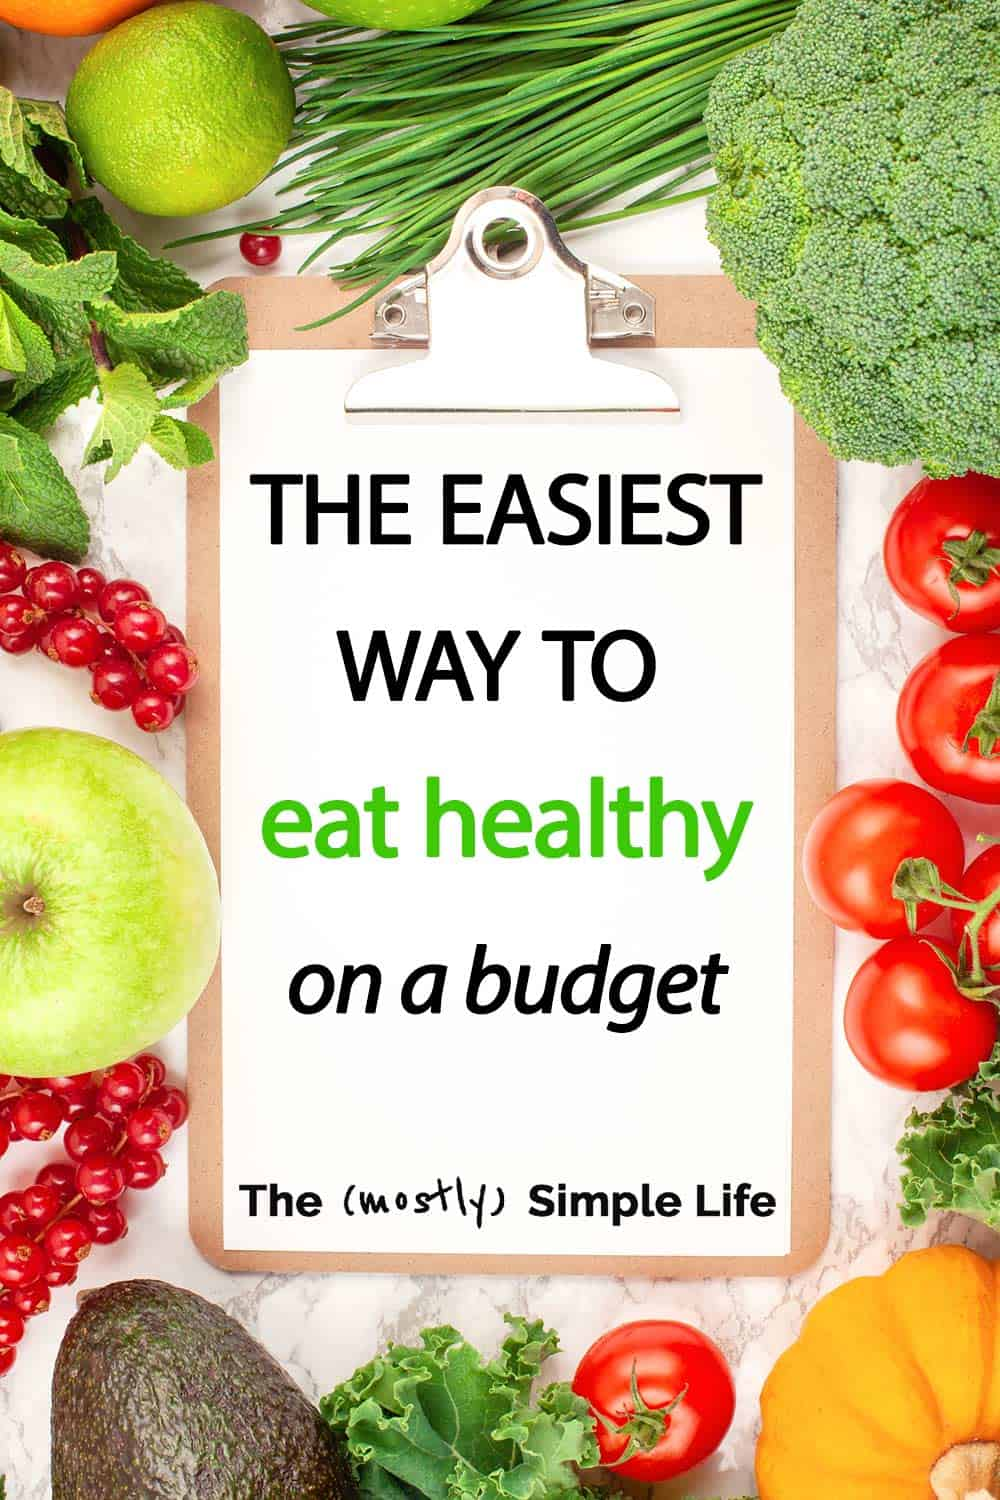 The Easiest Way to Eat Healthy on a Budget